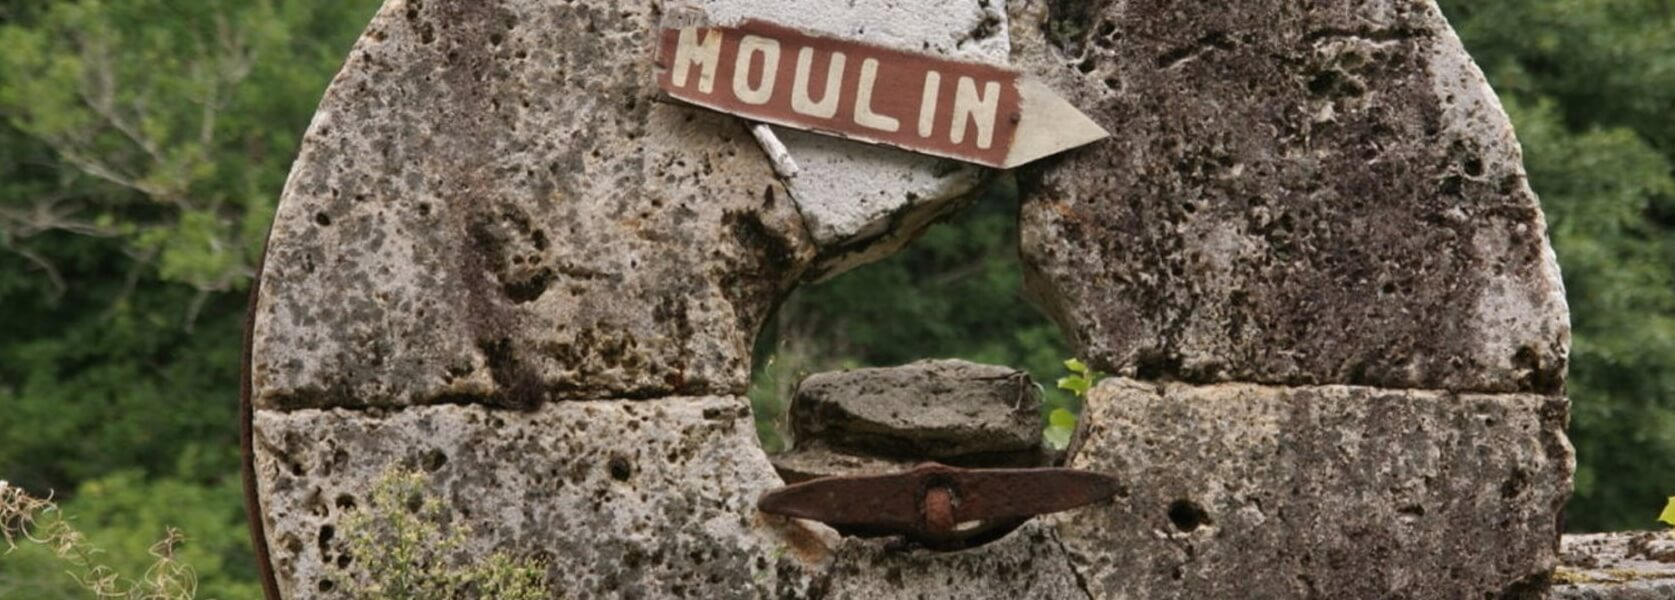 moulin de record